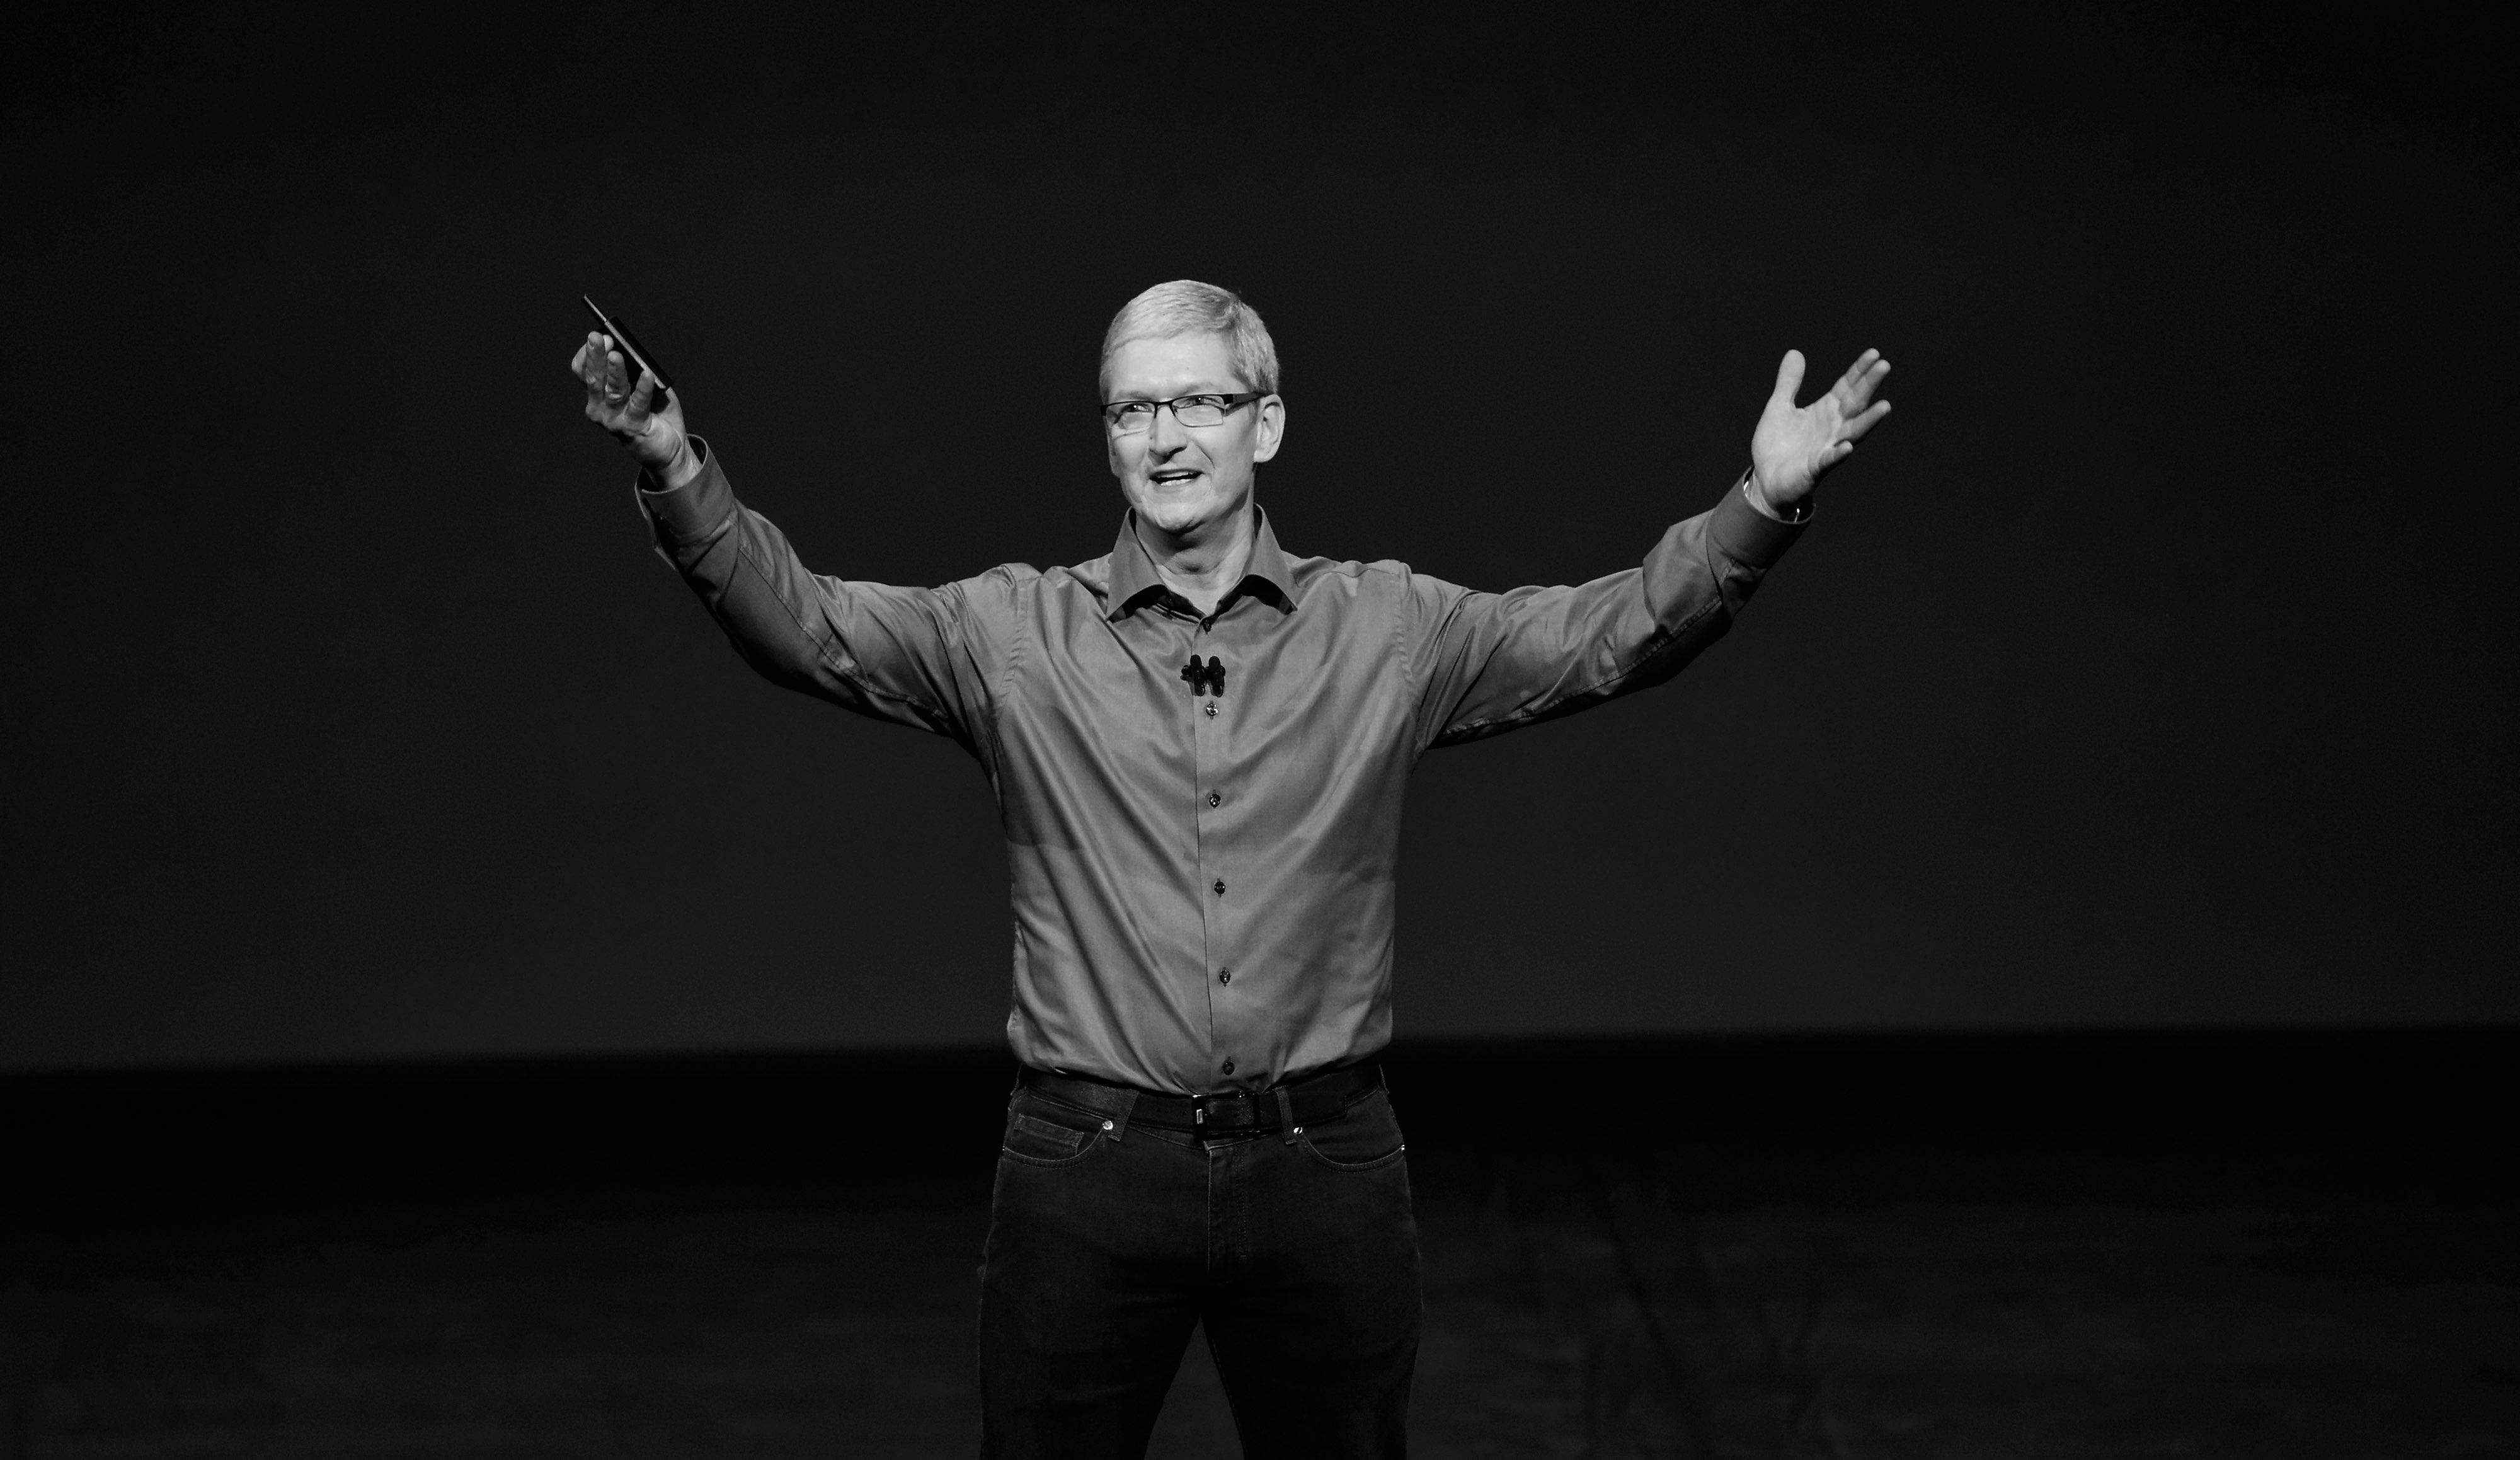 4000x2317 - Tim Cook Wallpapers 24